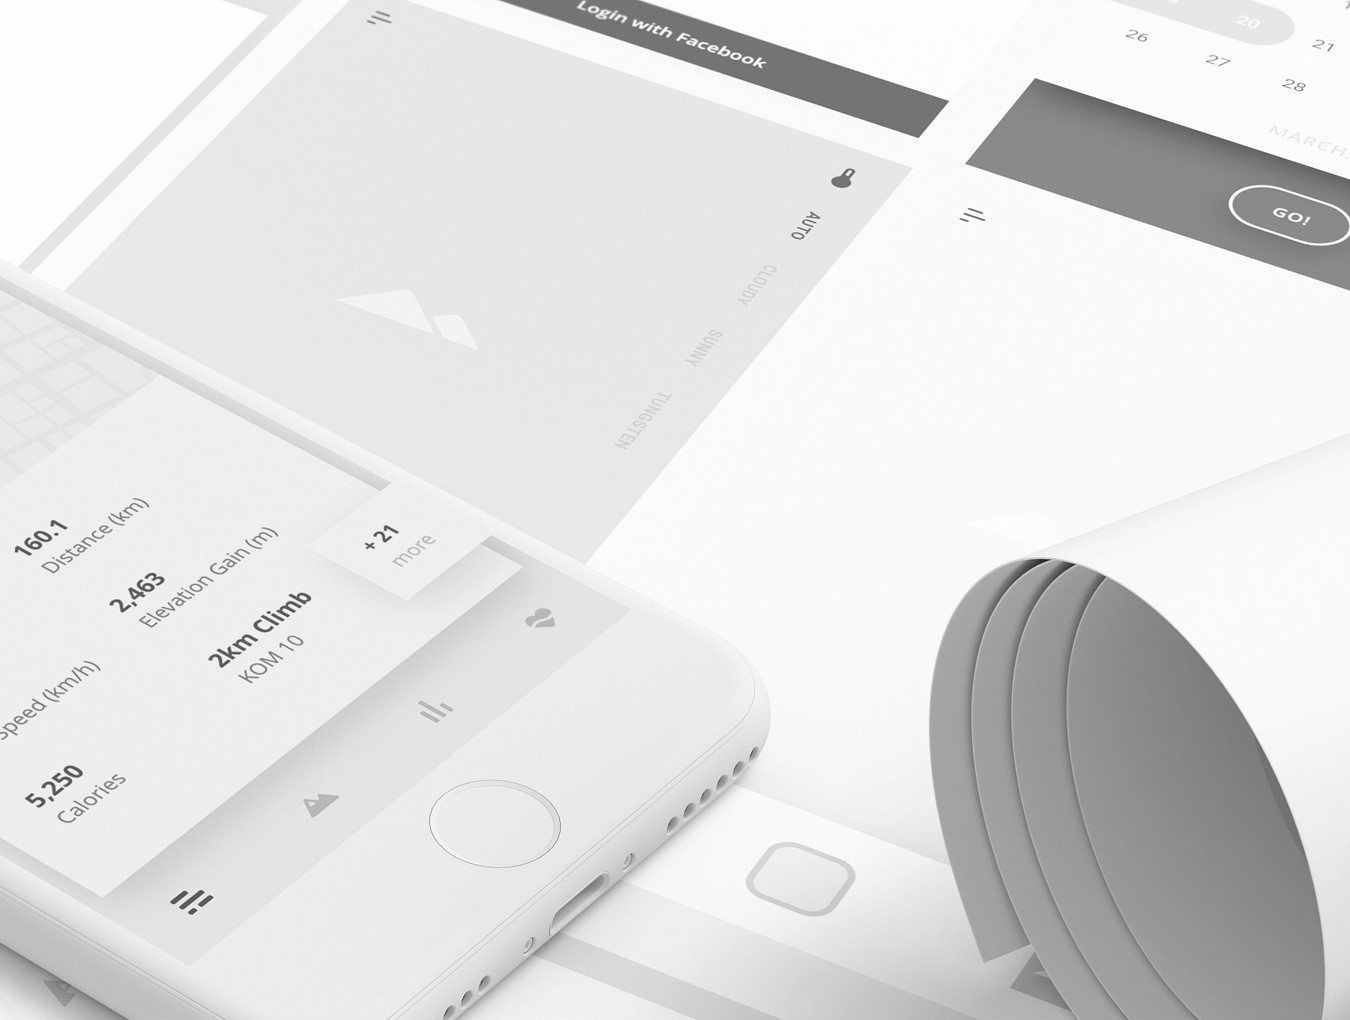 Sample assets from ui8's XD UX wireframing kit.